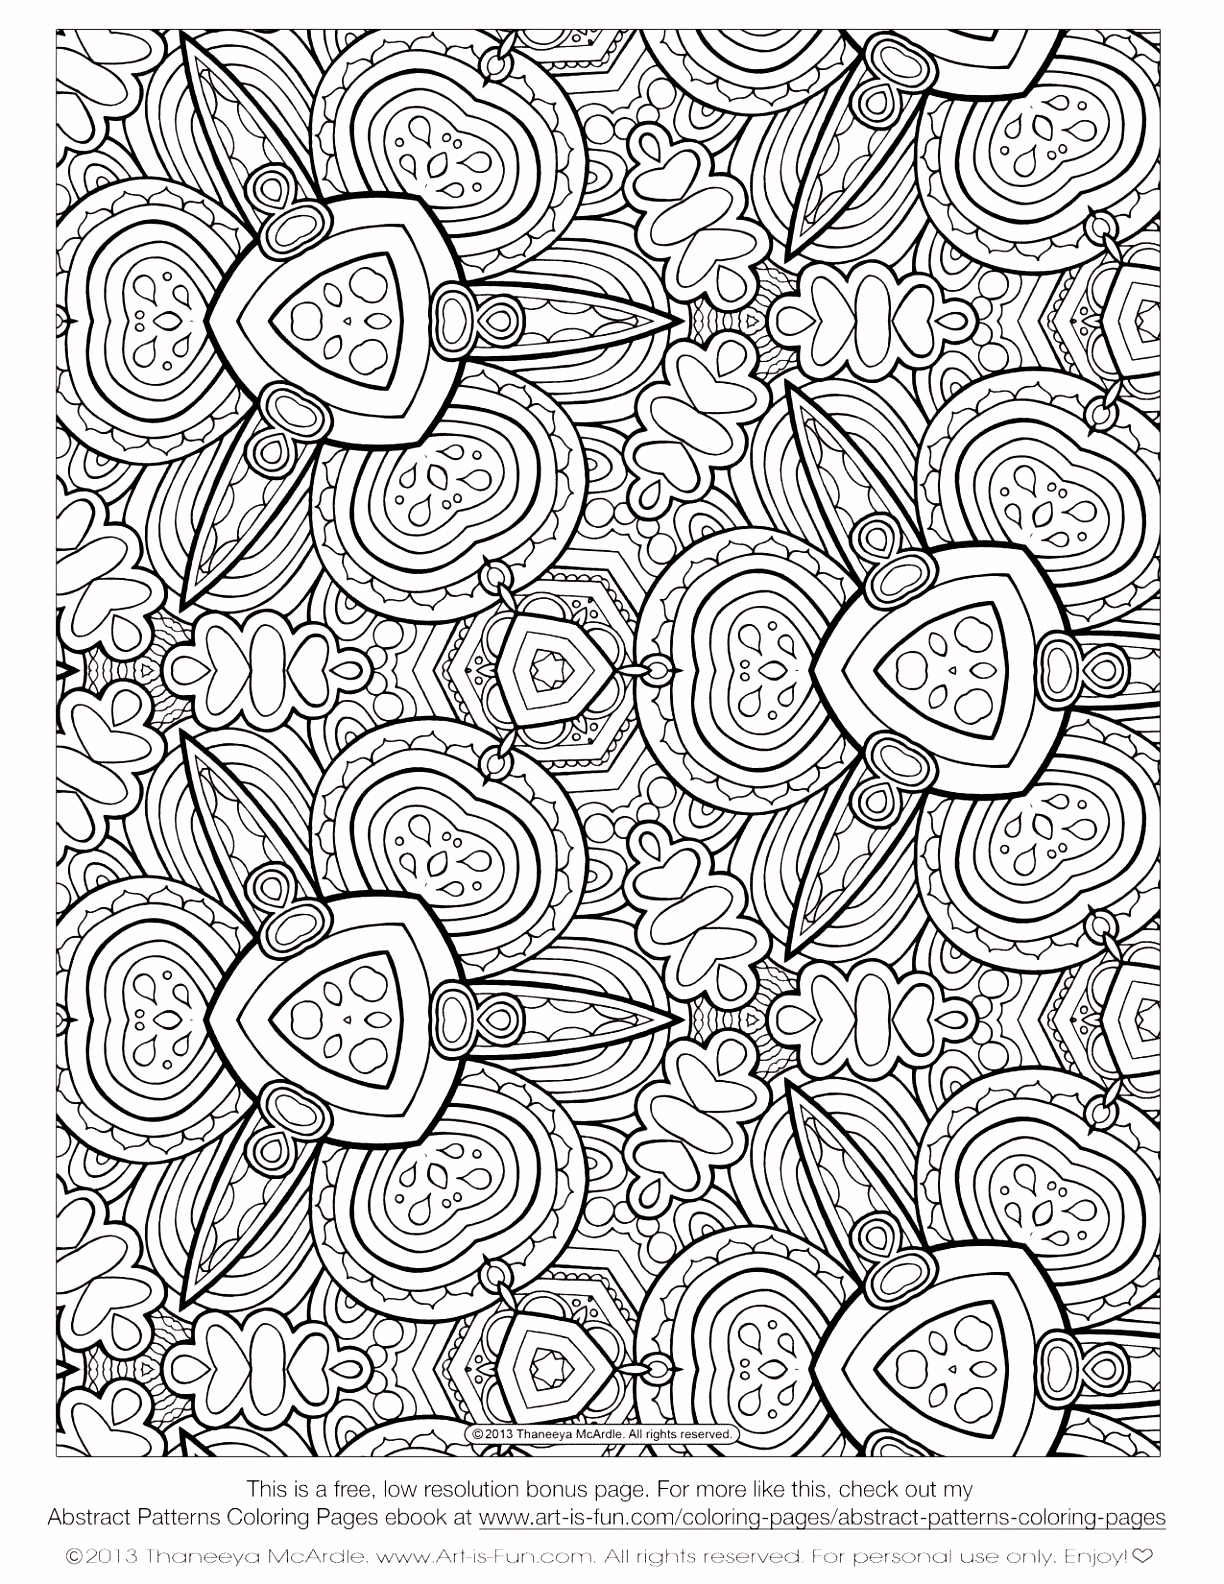 Luxury Ninjago Coloring Pages houuzzz of color